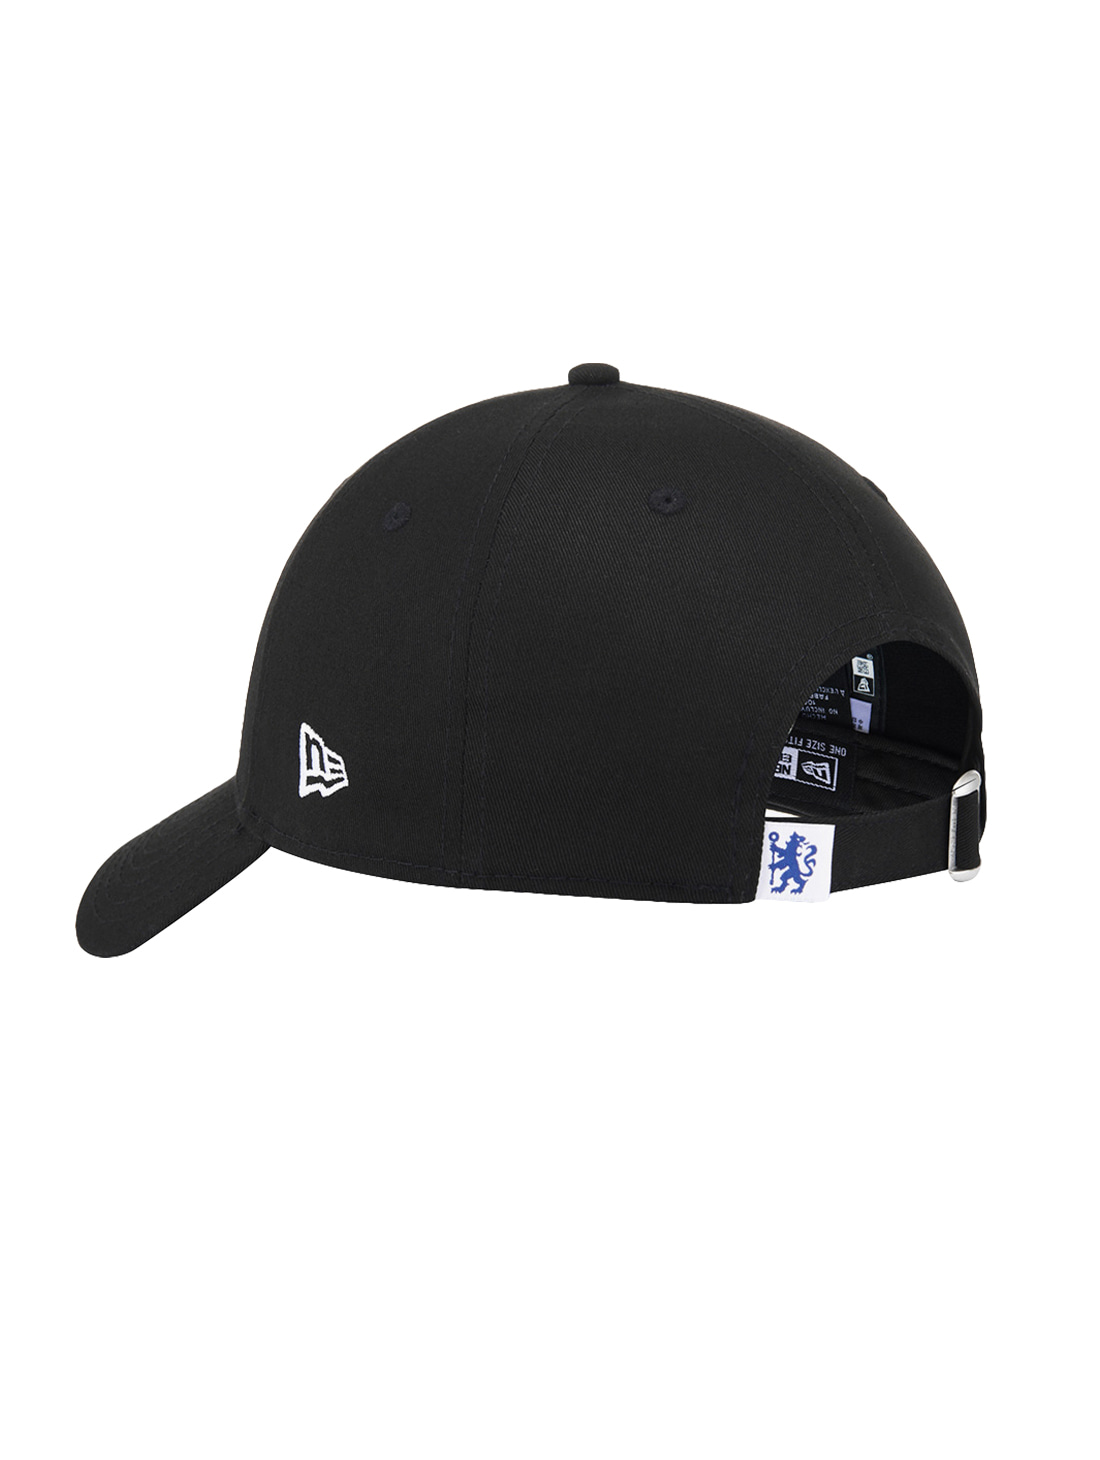 CHELSEA 940 BALL CAP - BLACK